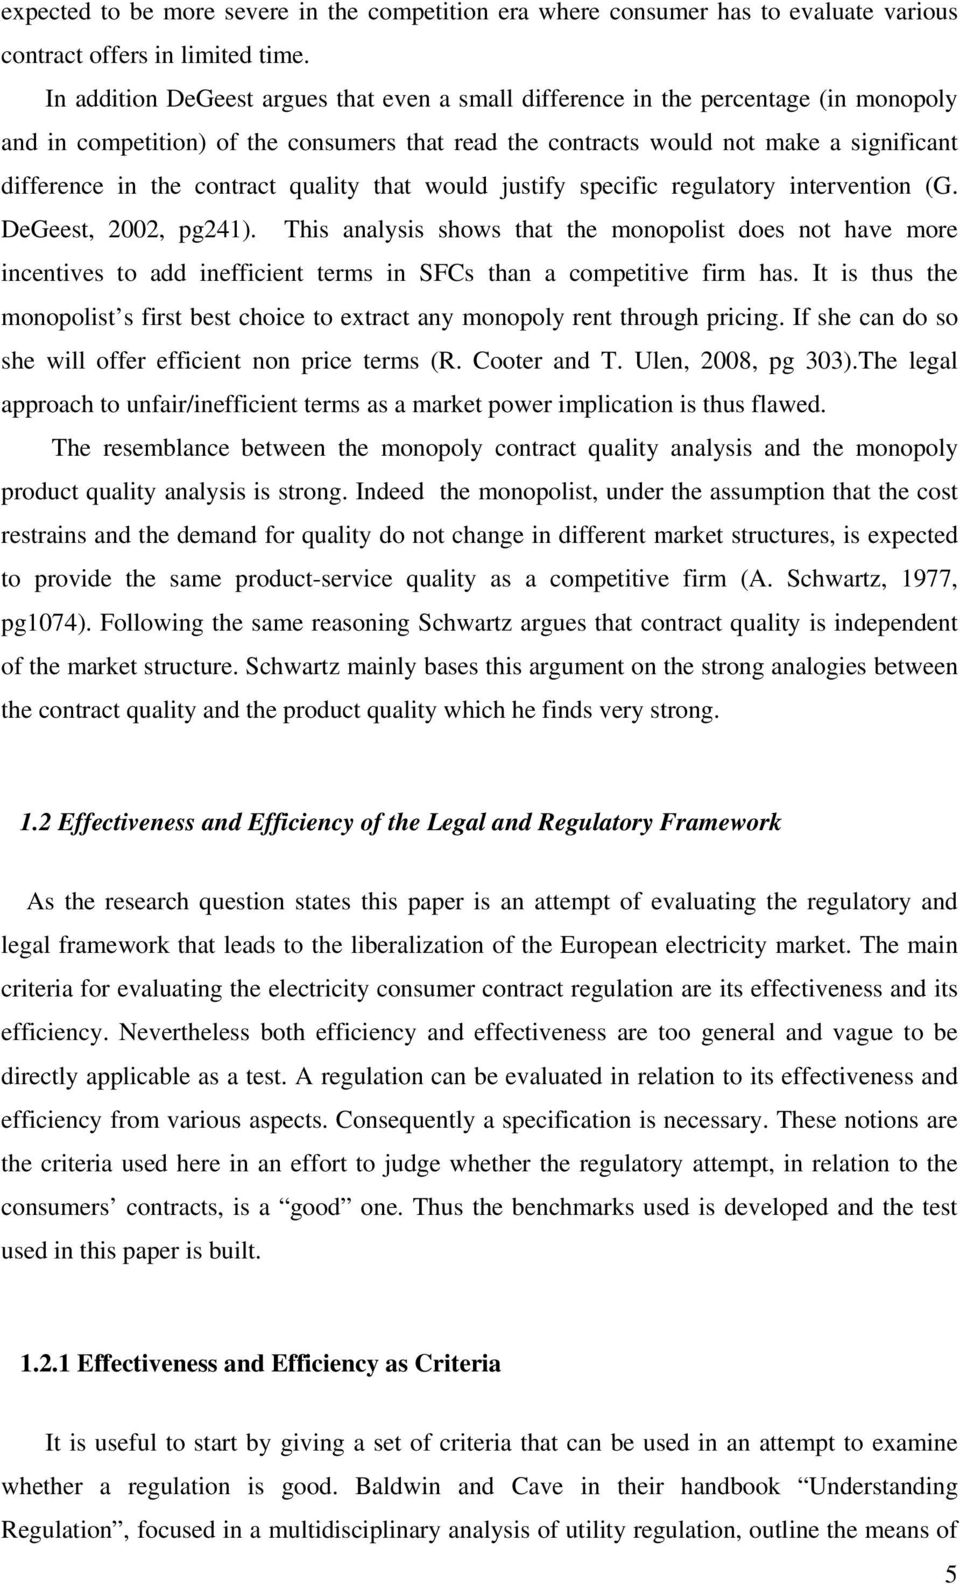 contract quality that would justify specific regulatory intervention (G. DeGeest, 2002, pg241).